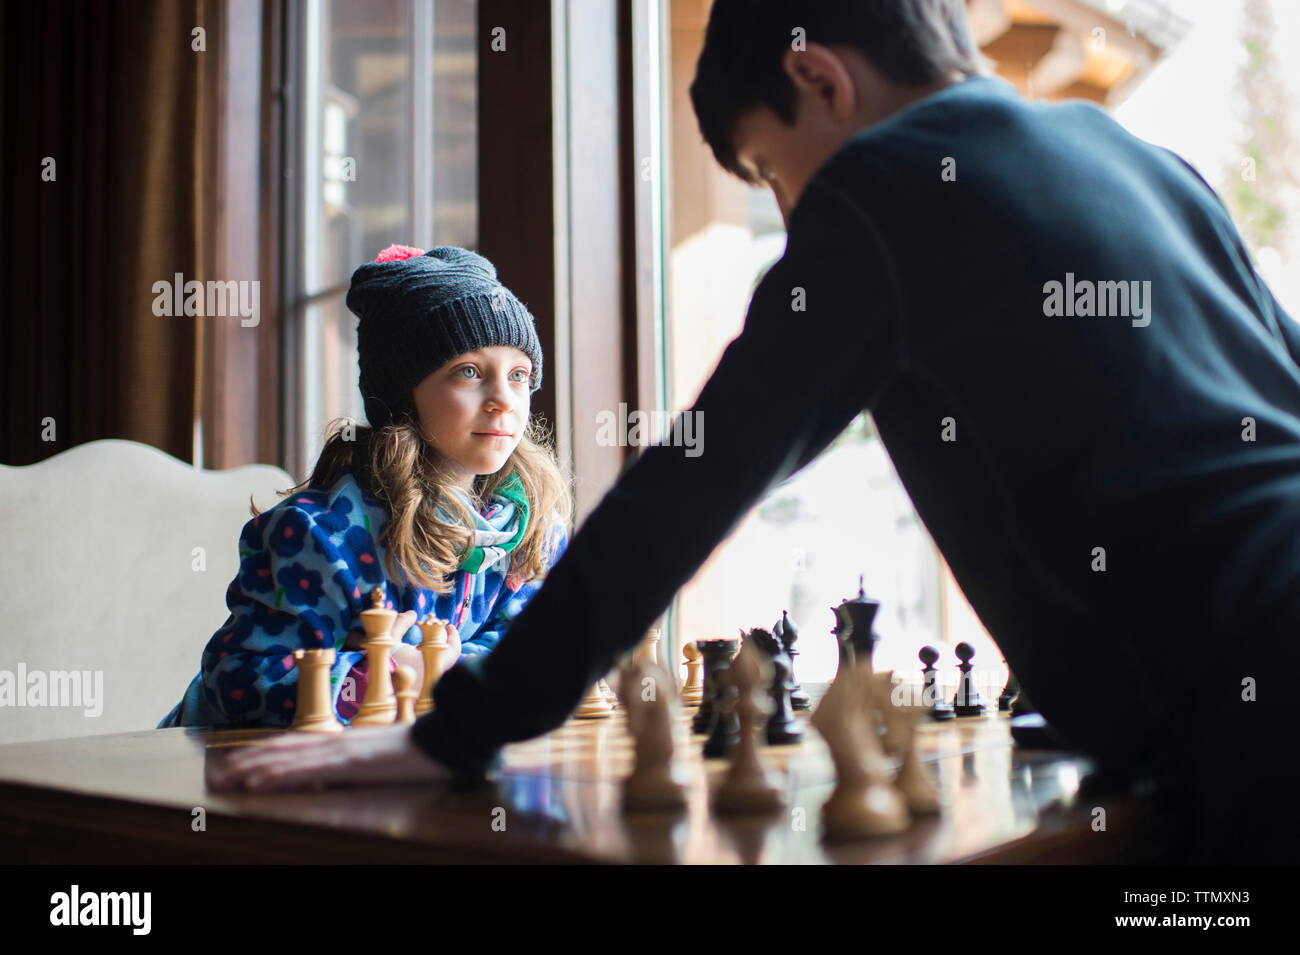 Siblings playing chess at home - Stock Image